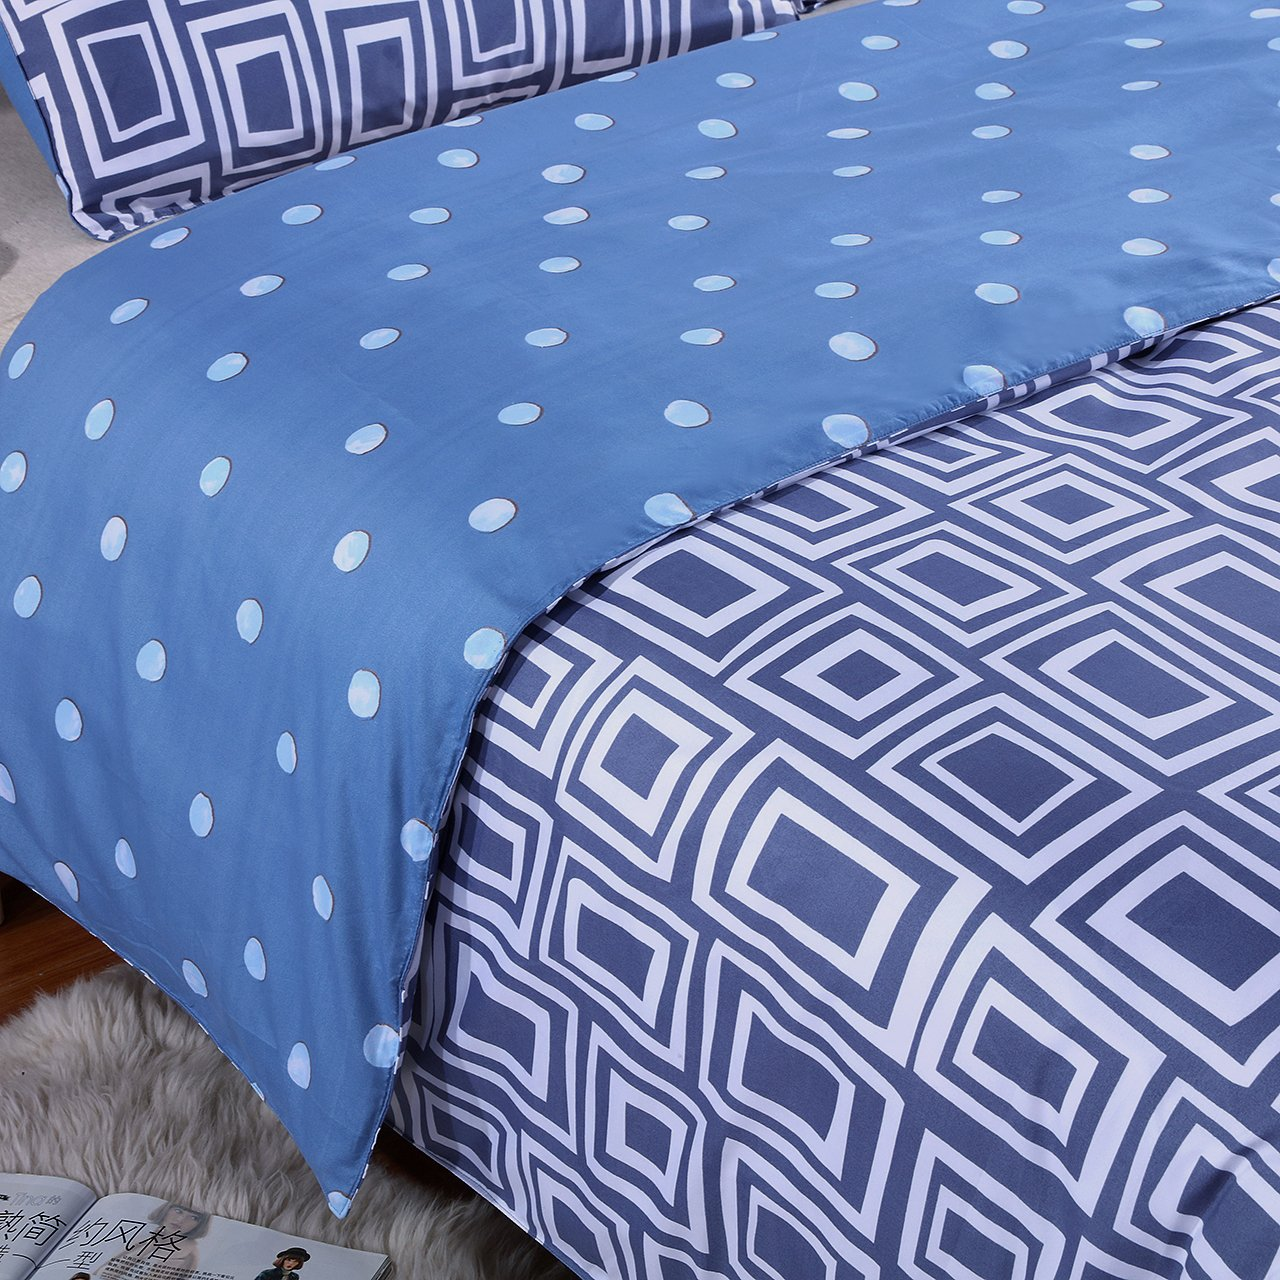 Melody House Hotel Quality Microfiber Reversible Duvet Cover Set Full/Queen 3 Piece Includes 2 Pillow Shams